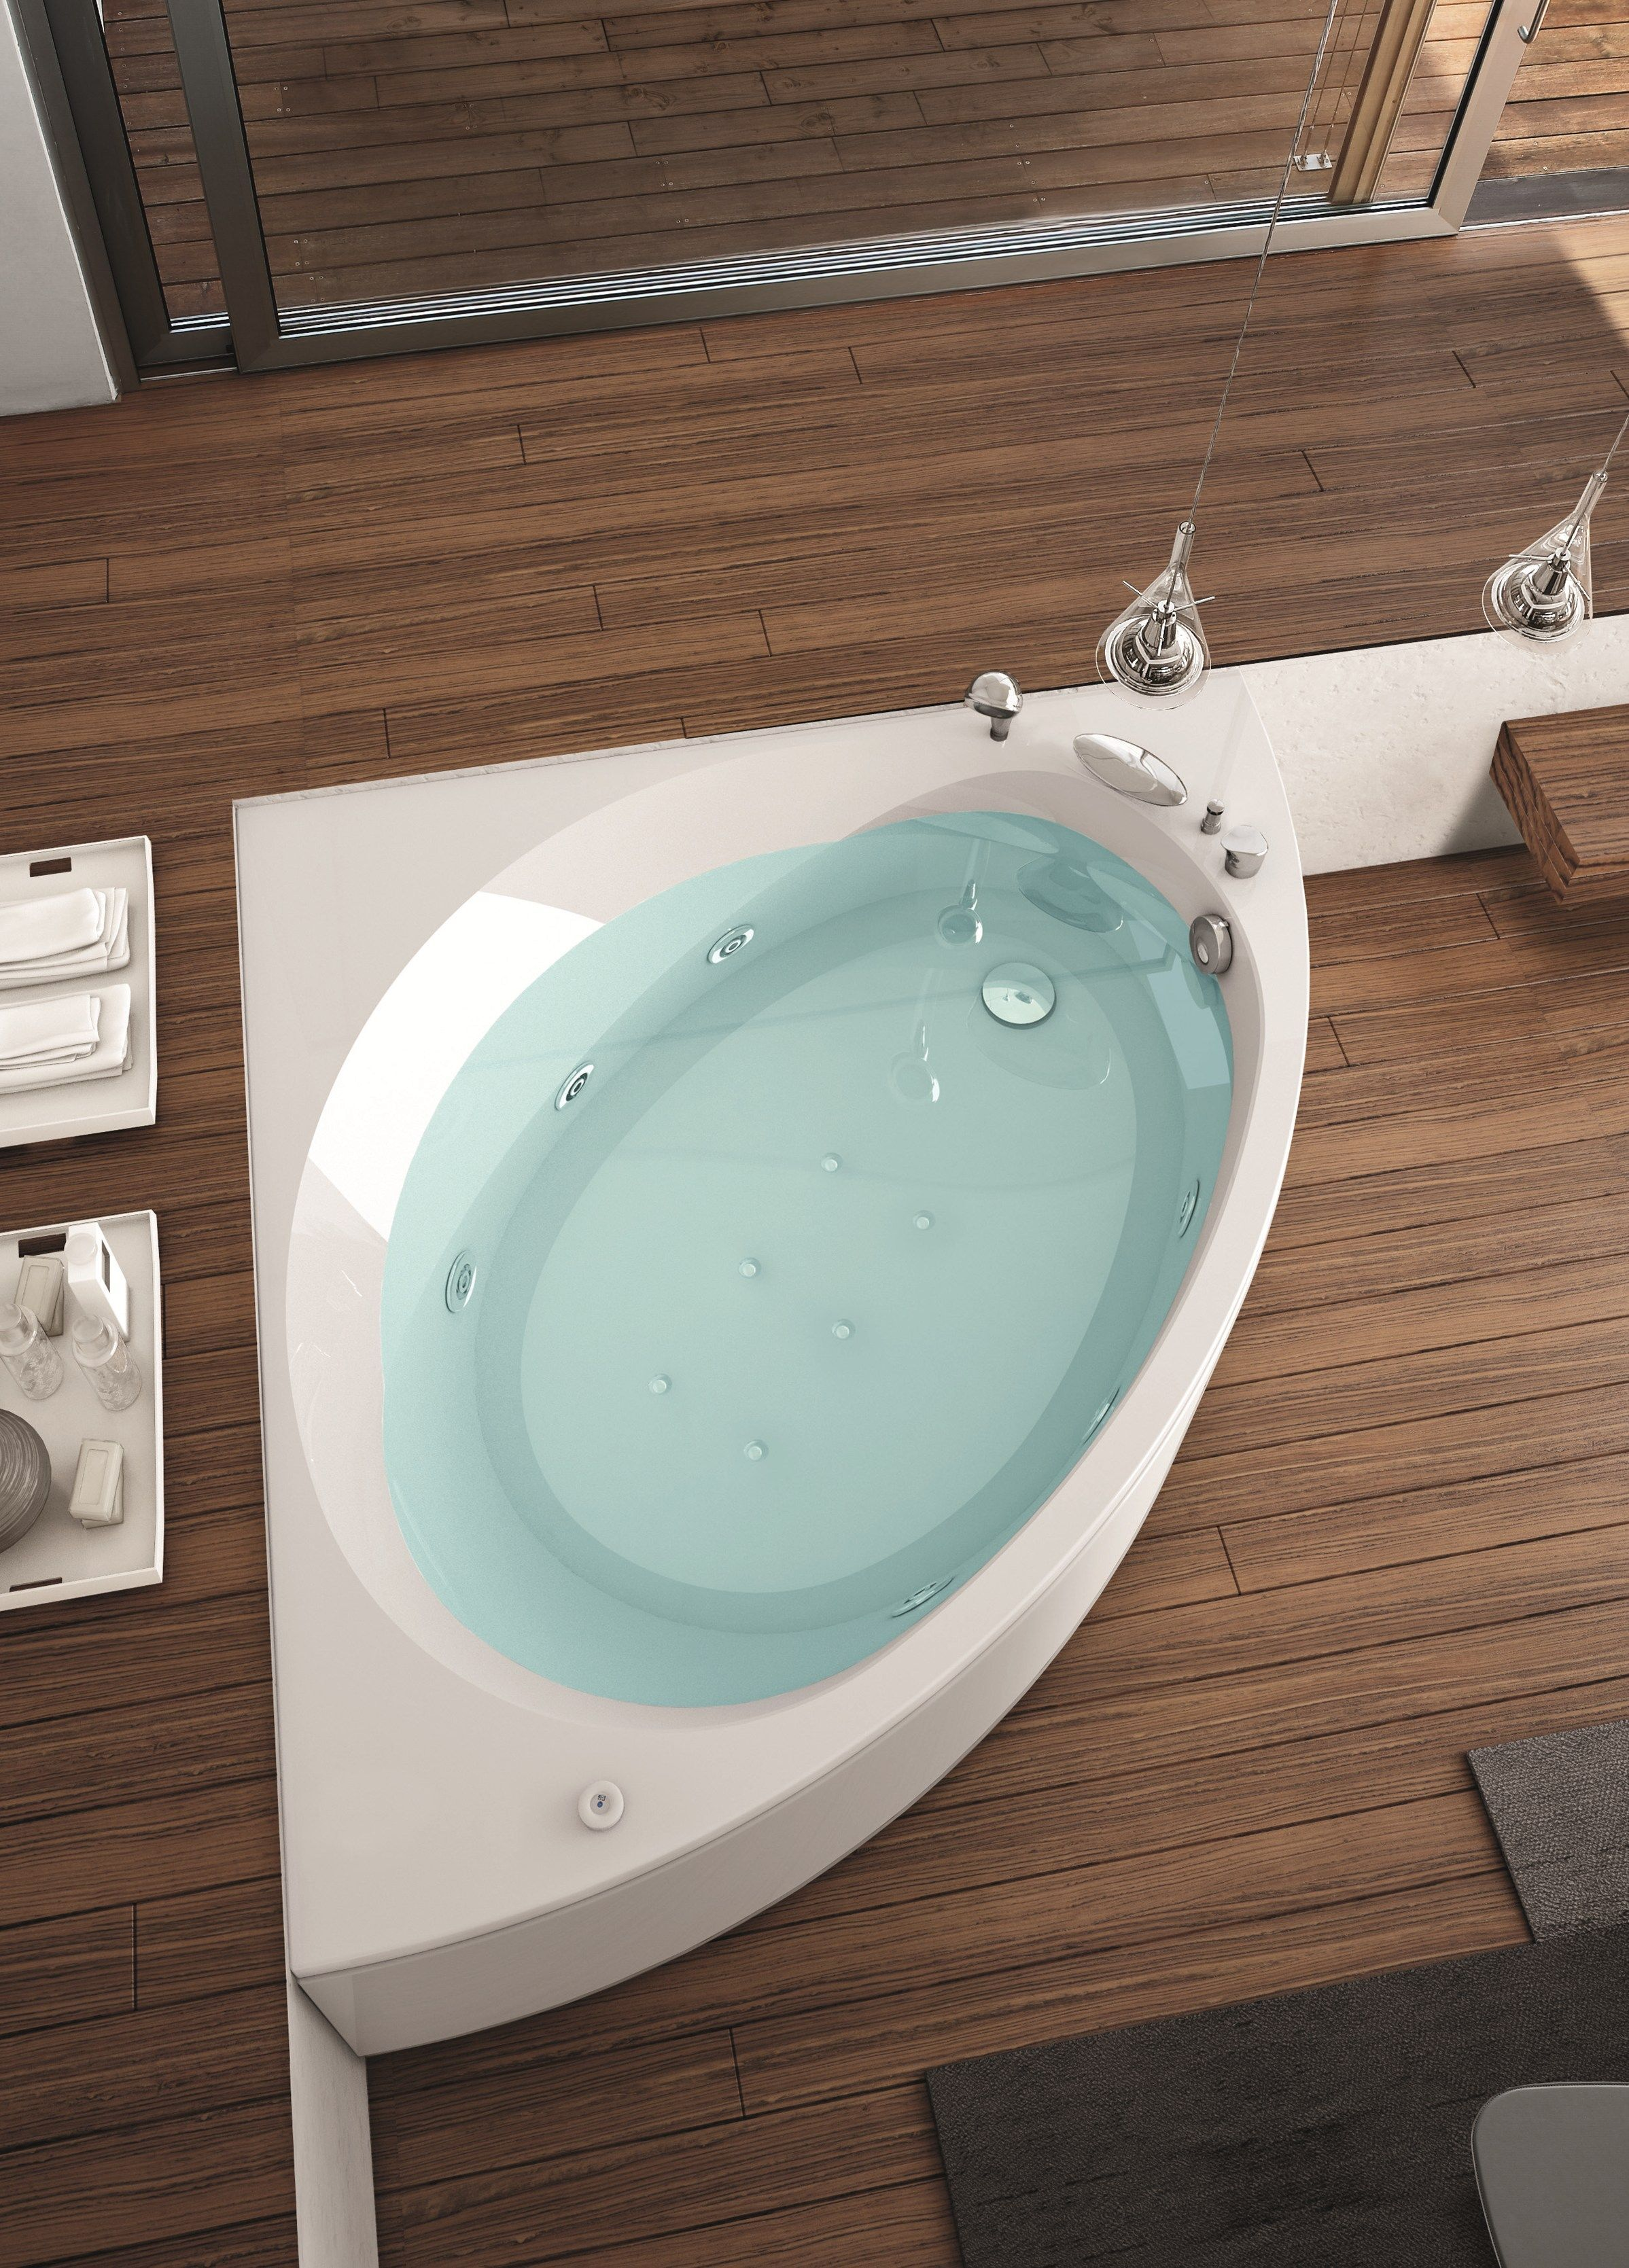 http://www.archiproducts.com/en/products/93986/nova-corner-whirlpool ...